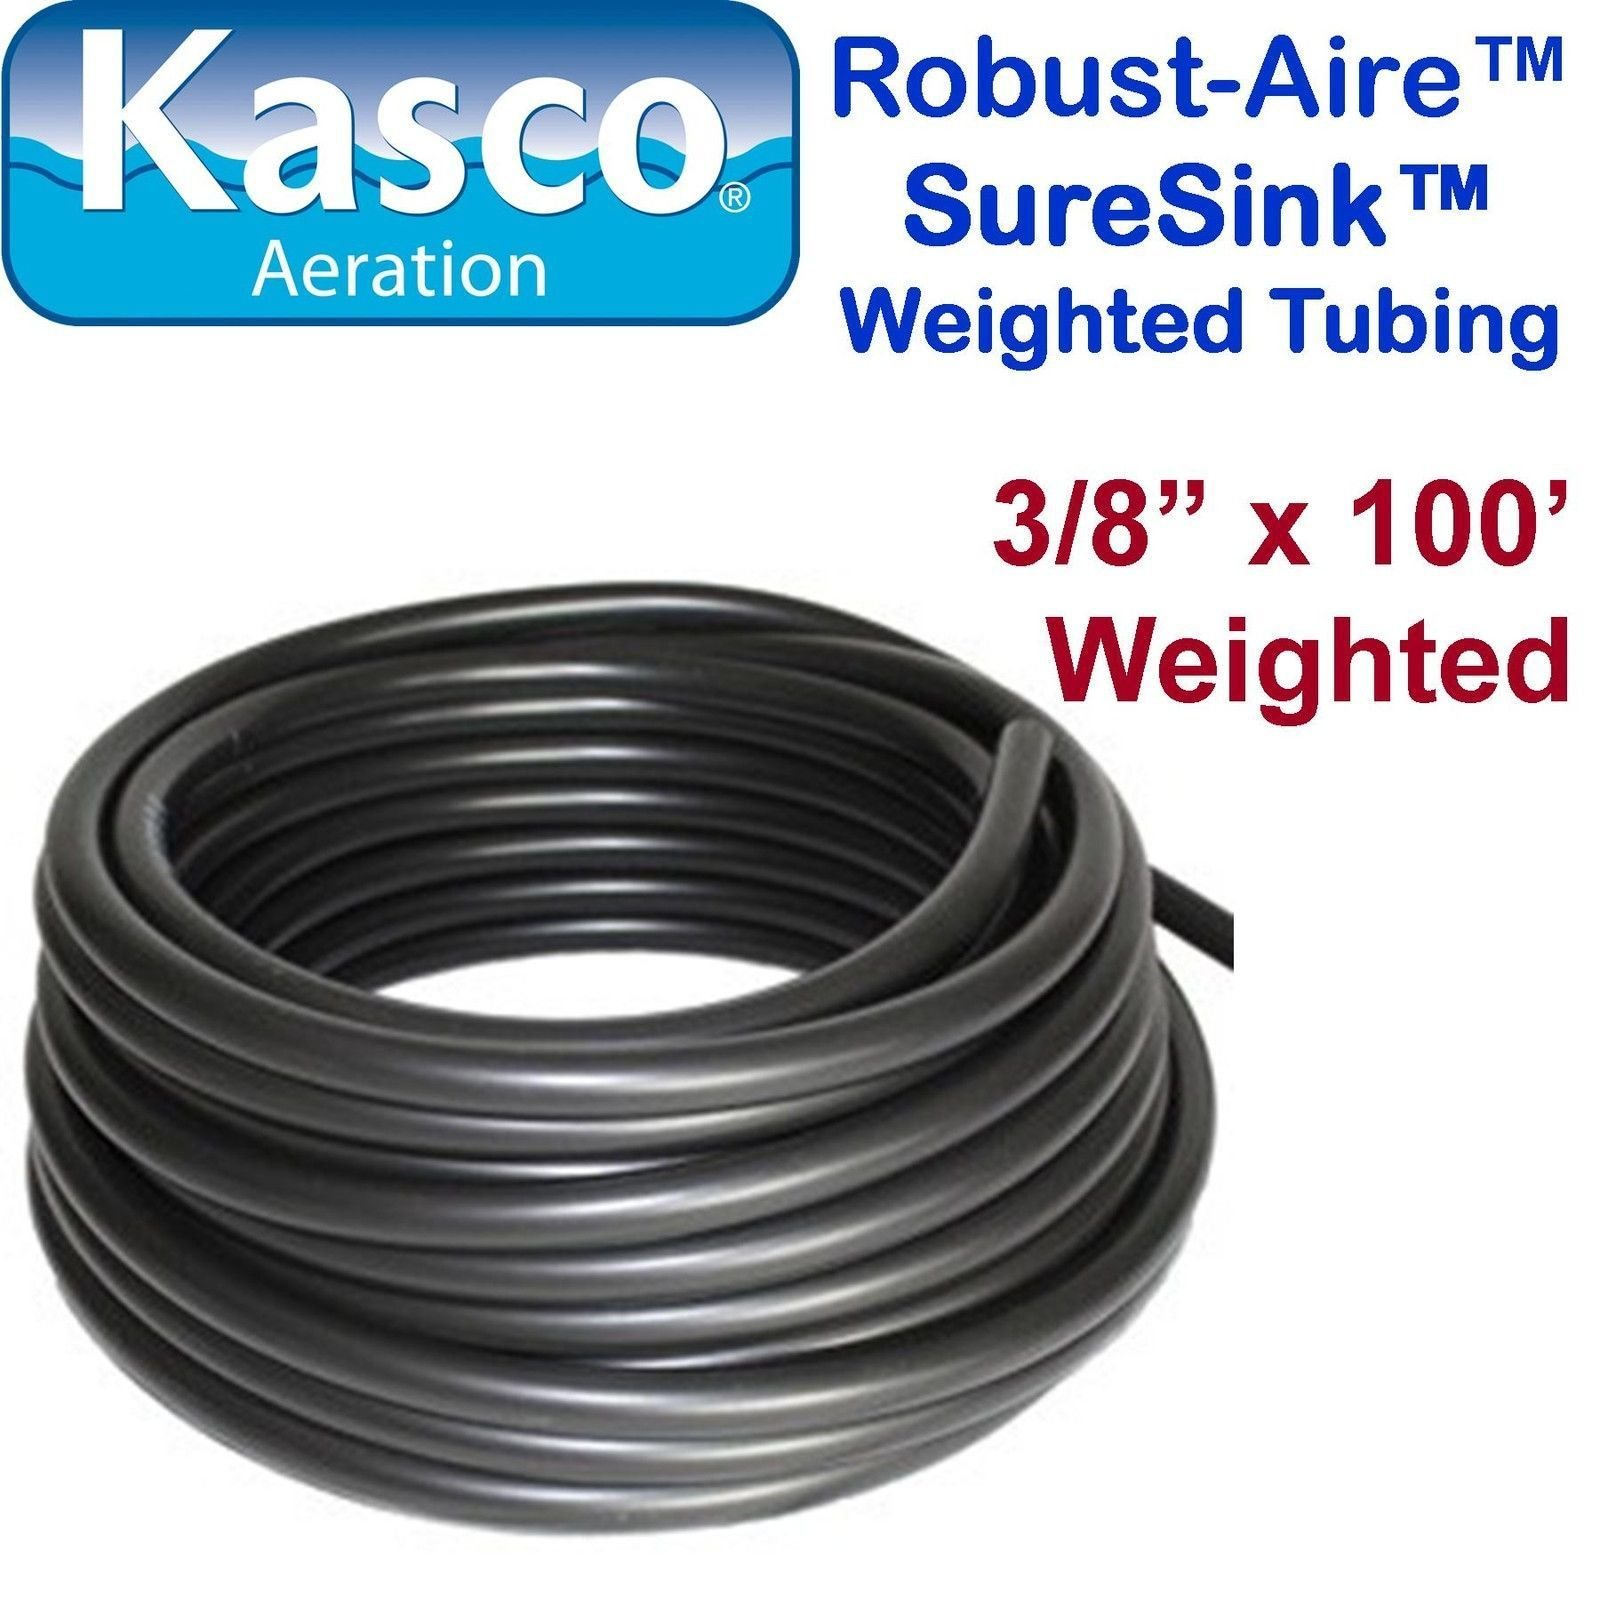 (Ship from USA) Kasco Aeration Robust-Aire SureSink Weighted Tubing 773380 - 3/8'' x 100' /ITEM NO#E8FH4F854100475